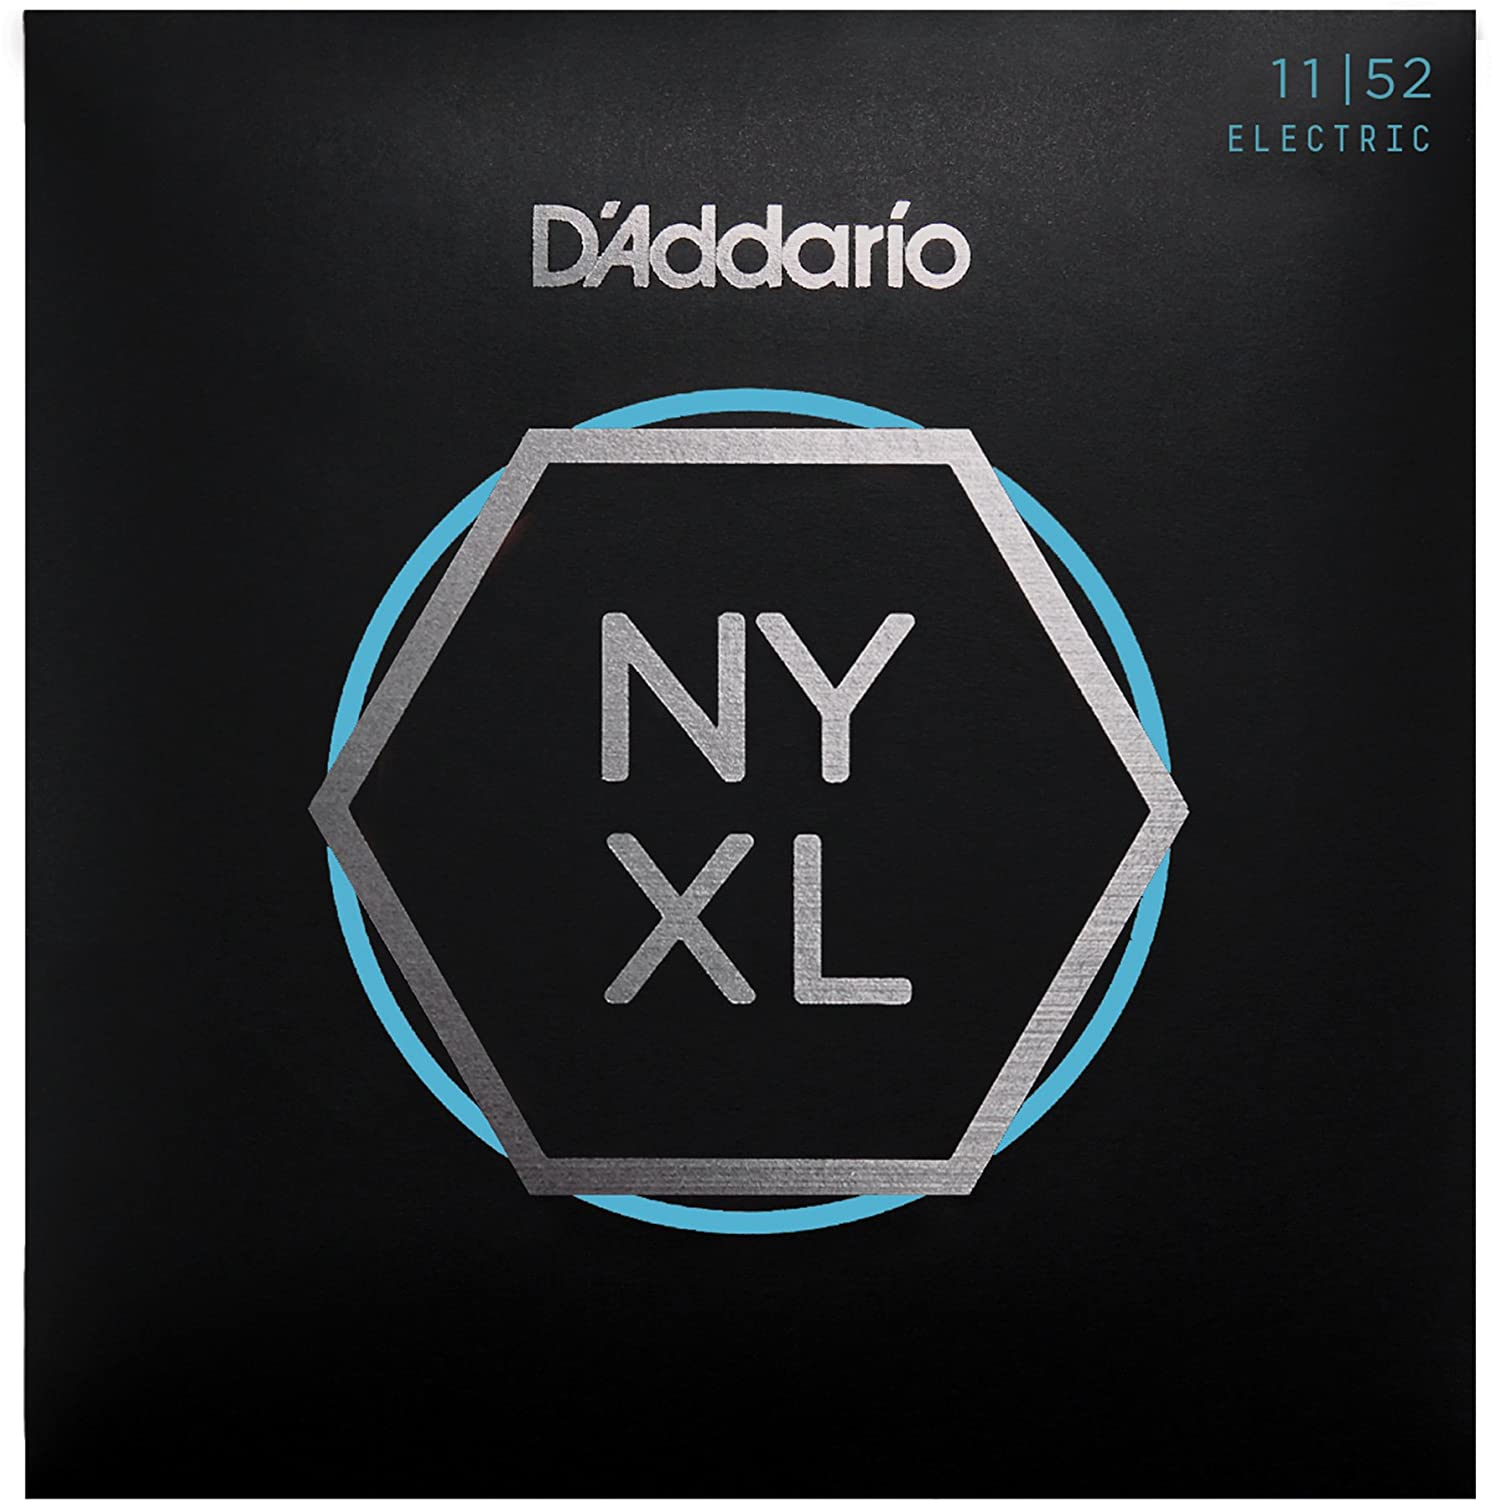 D'Addario NYXL1059 Nickel Wound 7-String Electric Guitar Strings, Regular Light, 10-59 D'Addario